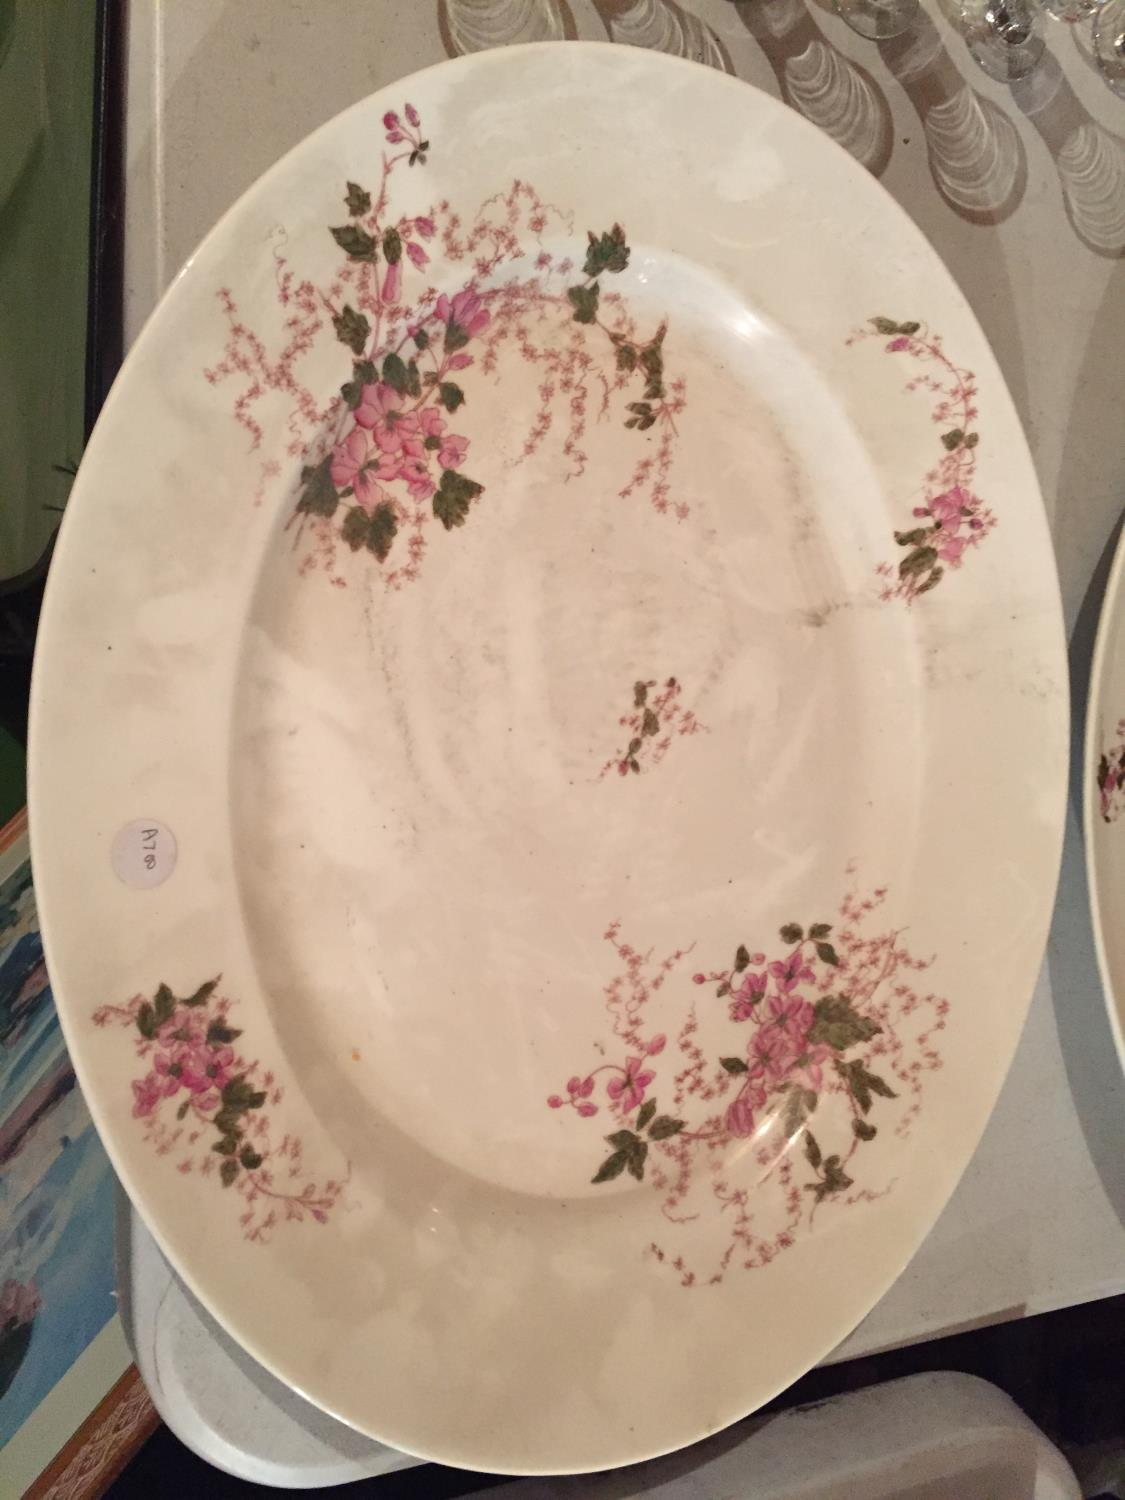 TWO LARGE HEAVY CERAMIC MEAT PLATTERS WITH A DELICATE PINK FLOWER DESIGN - Image 4 of 6